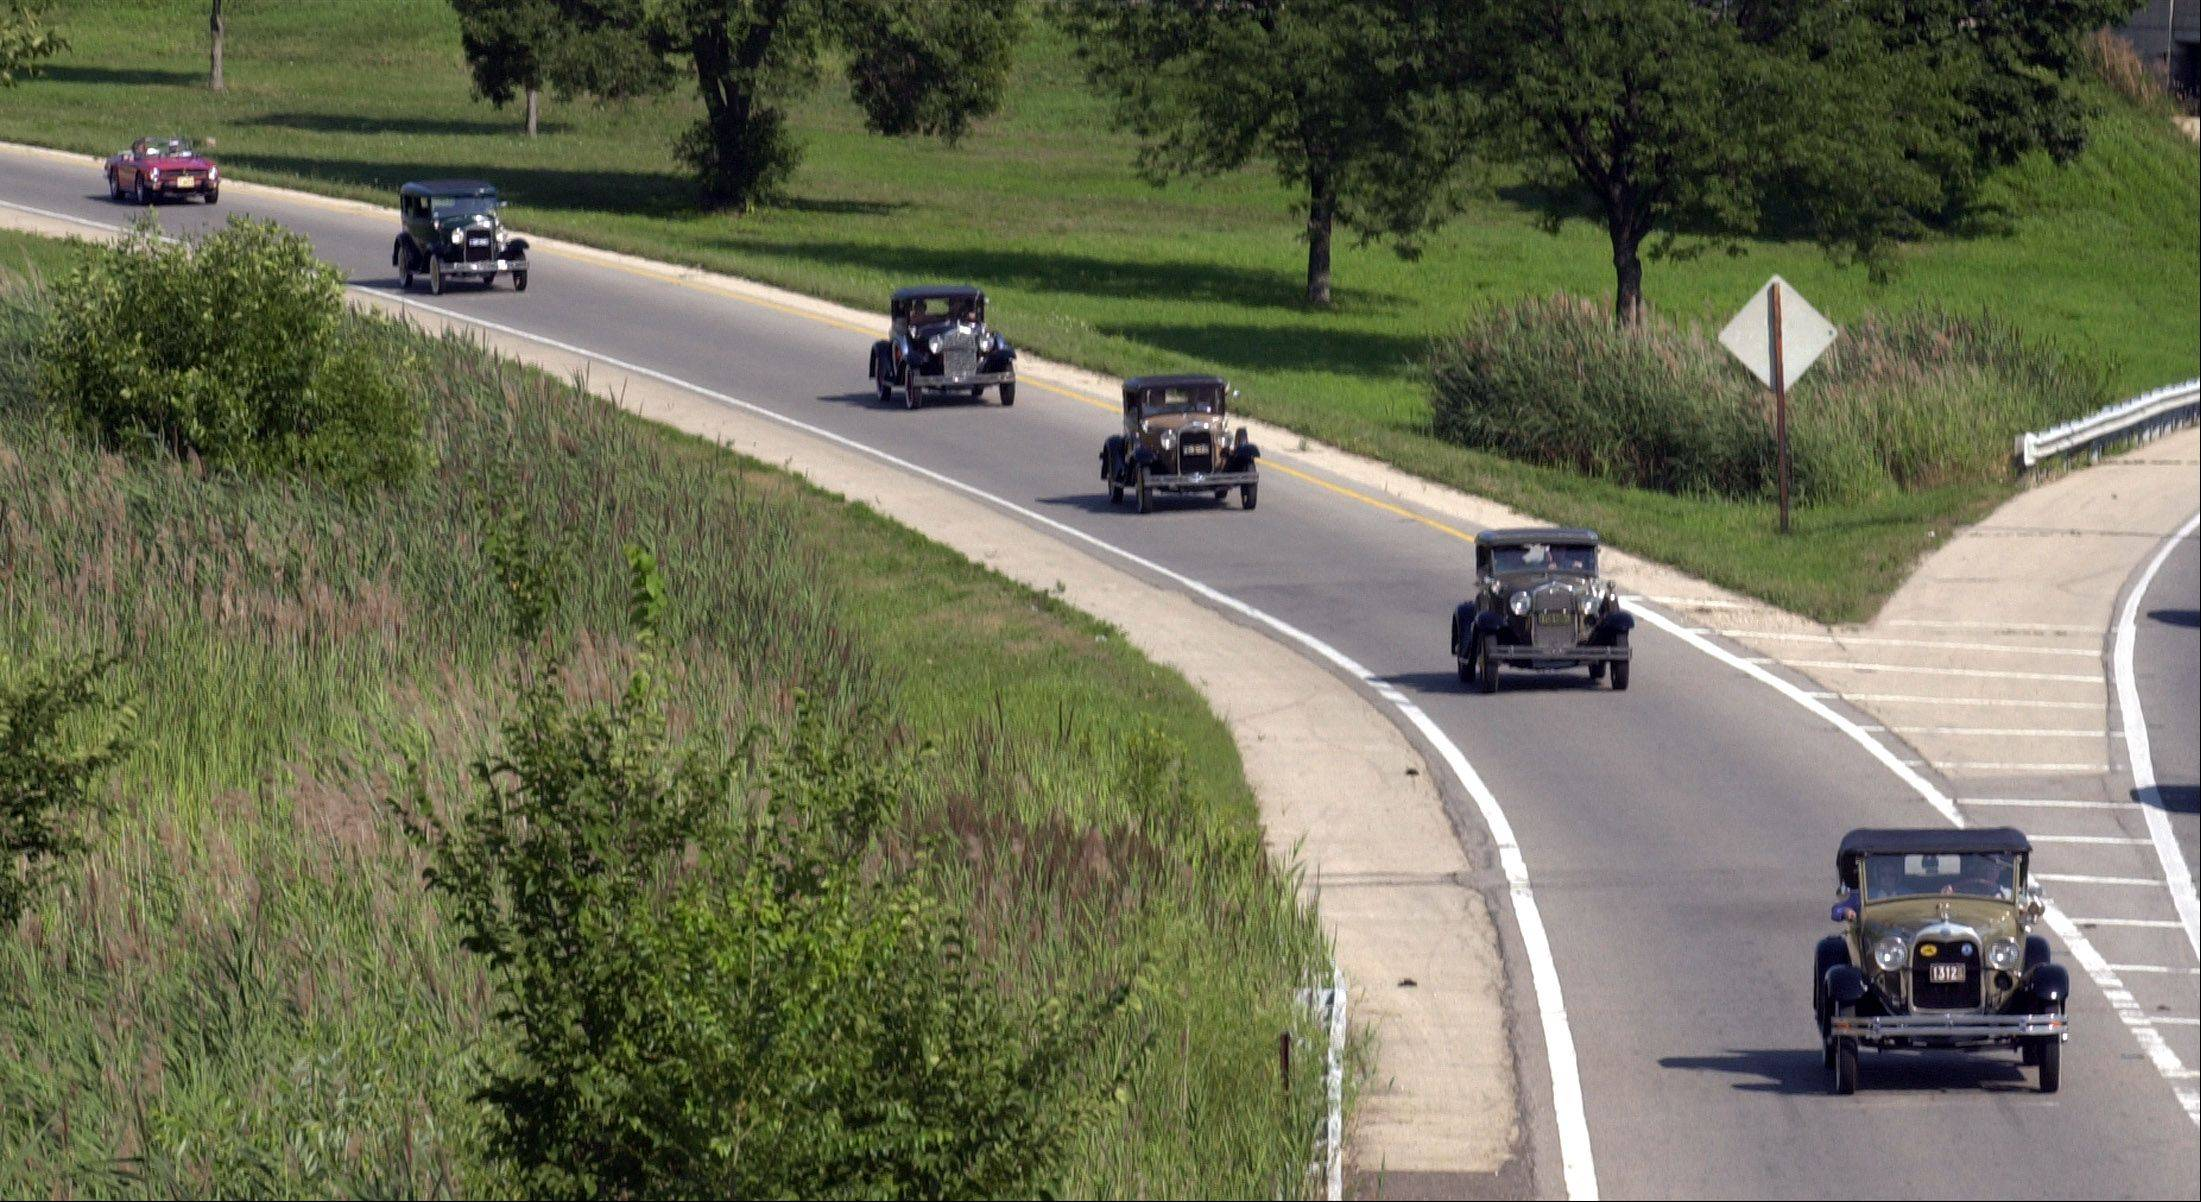 ... and now. This year's race will be held at 3:30 p.m. Saturday, Aug. 18, along Larkin Avenue and will feature vintage cars.